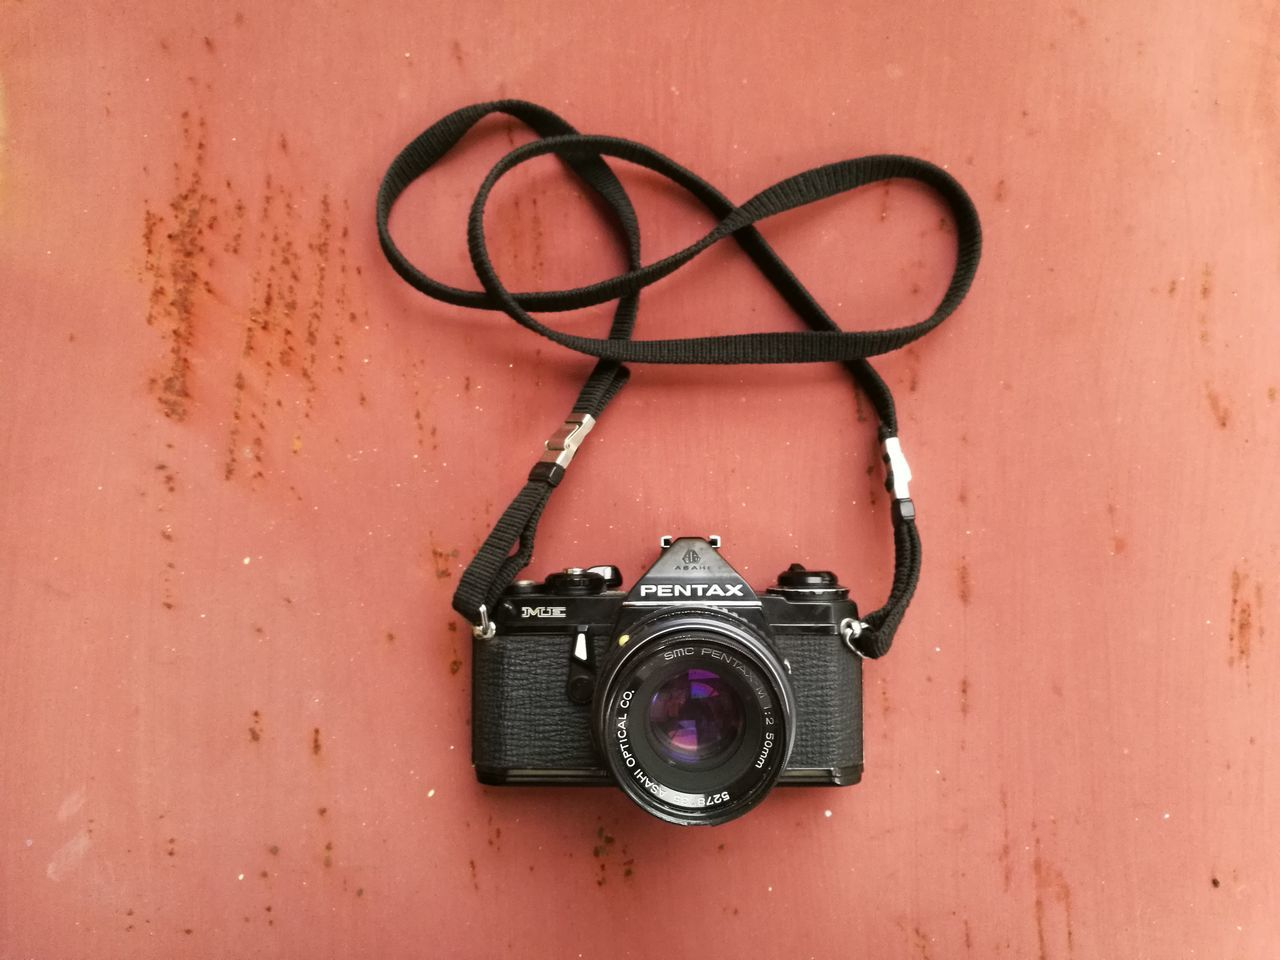 camera - photographic equipment, photography themes, old-fashioned, no people, camera, close-up, outdoors, day